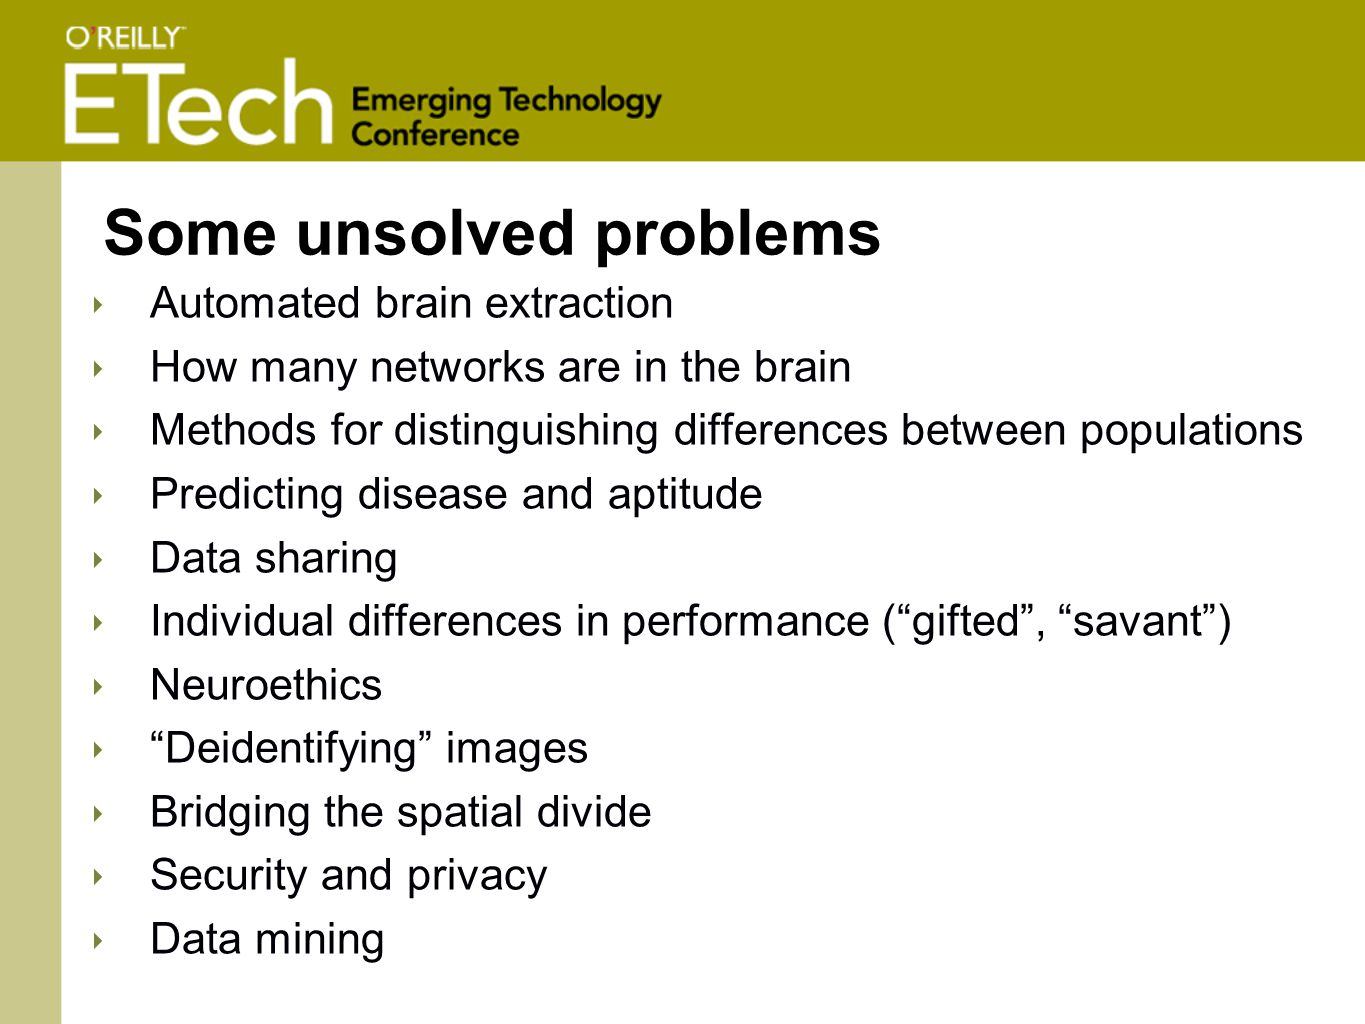 Some unsolved problems ‣ Automated brain extraction ‣ How many networks are in the brain ‣ Methods for distinguishing differences between populations ‣ Predicting disease and aptitude ‣ Data sharing ‣ Individual differences in performance ( gifted , savant ) ‣ Neuroethics ‣ Deidentifying images ‣ Bridging the spatial divide ‣ Security and privacy ‣ Data mining